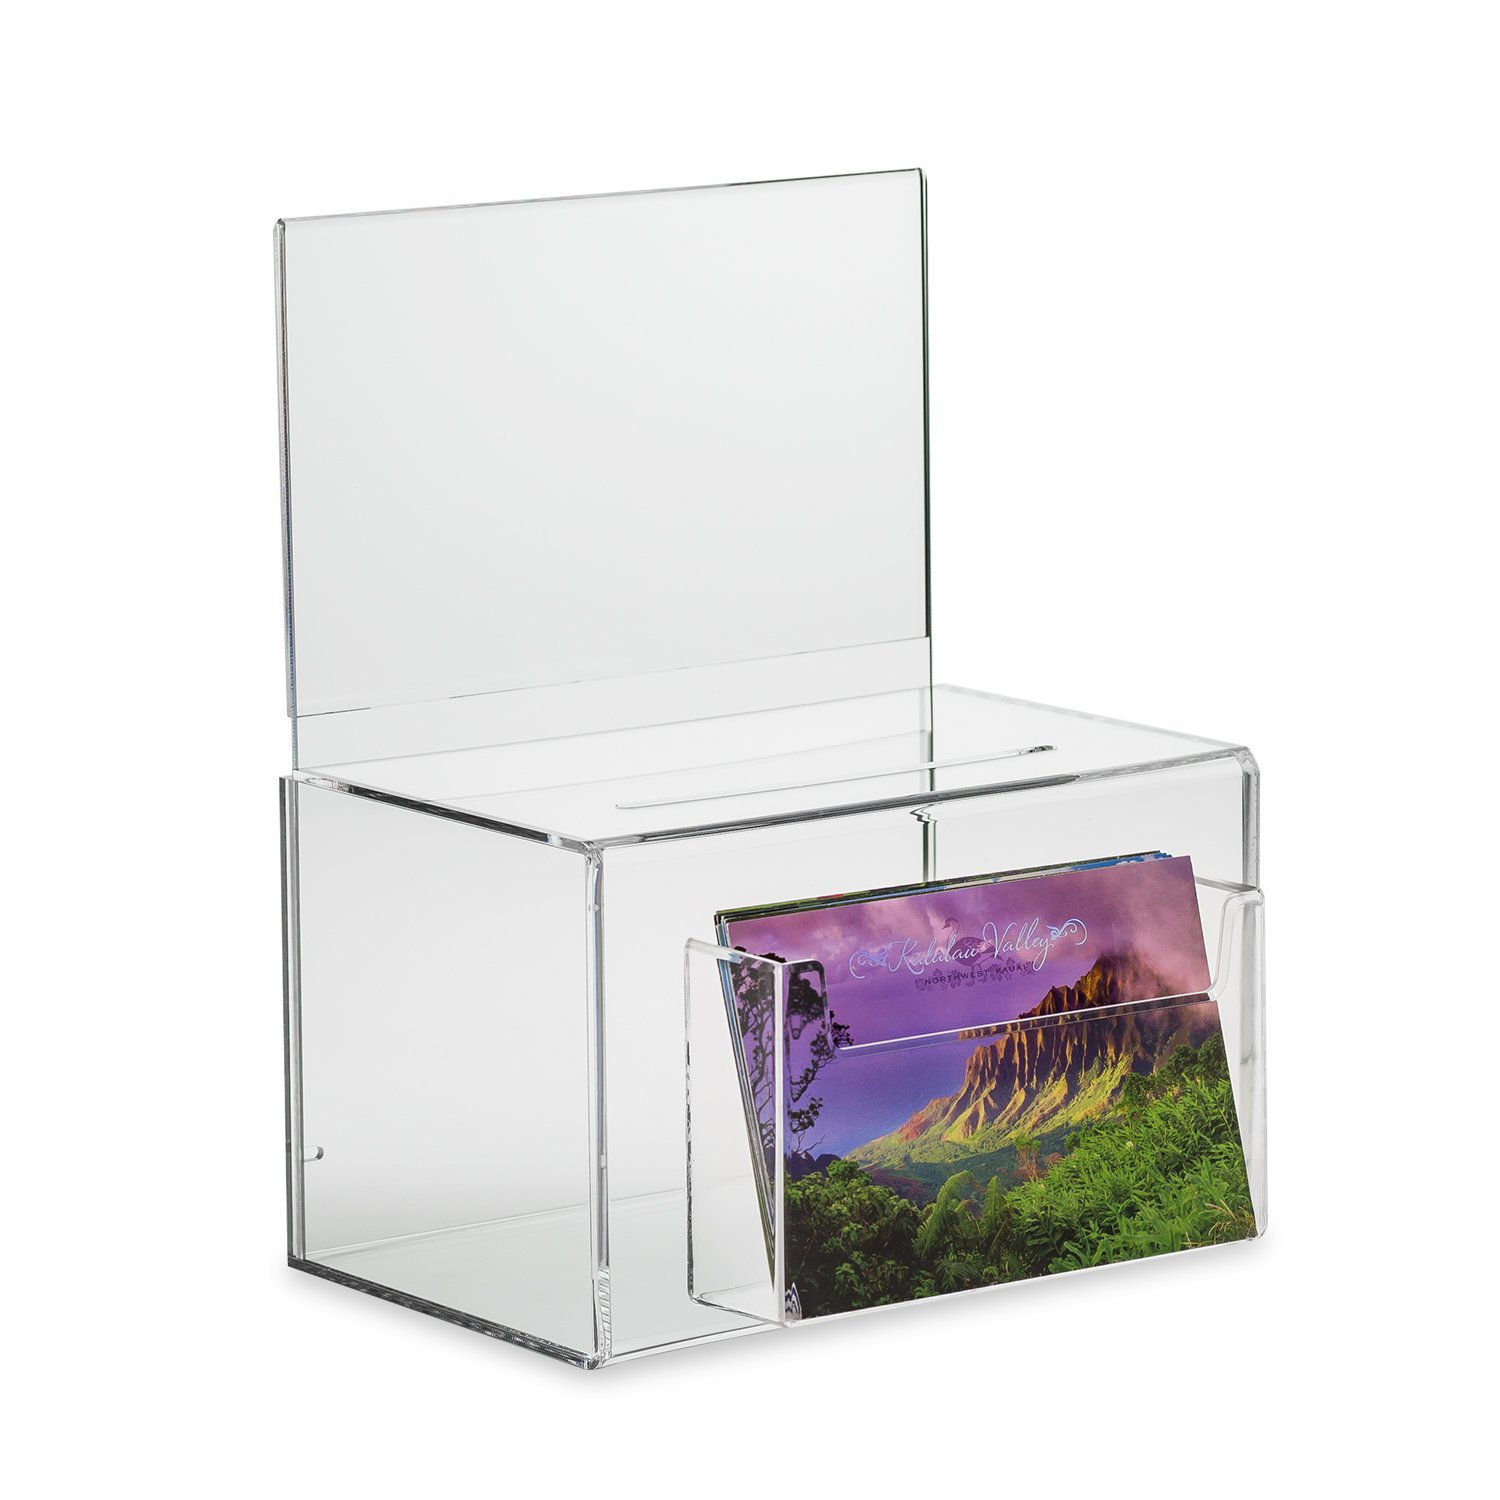 SourceOne Large Oblong Donation Box W/ 8 1/2 x 11 Sign Holder (Clear w/Pocket) by SOURCEONE.ORG